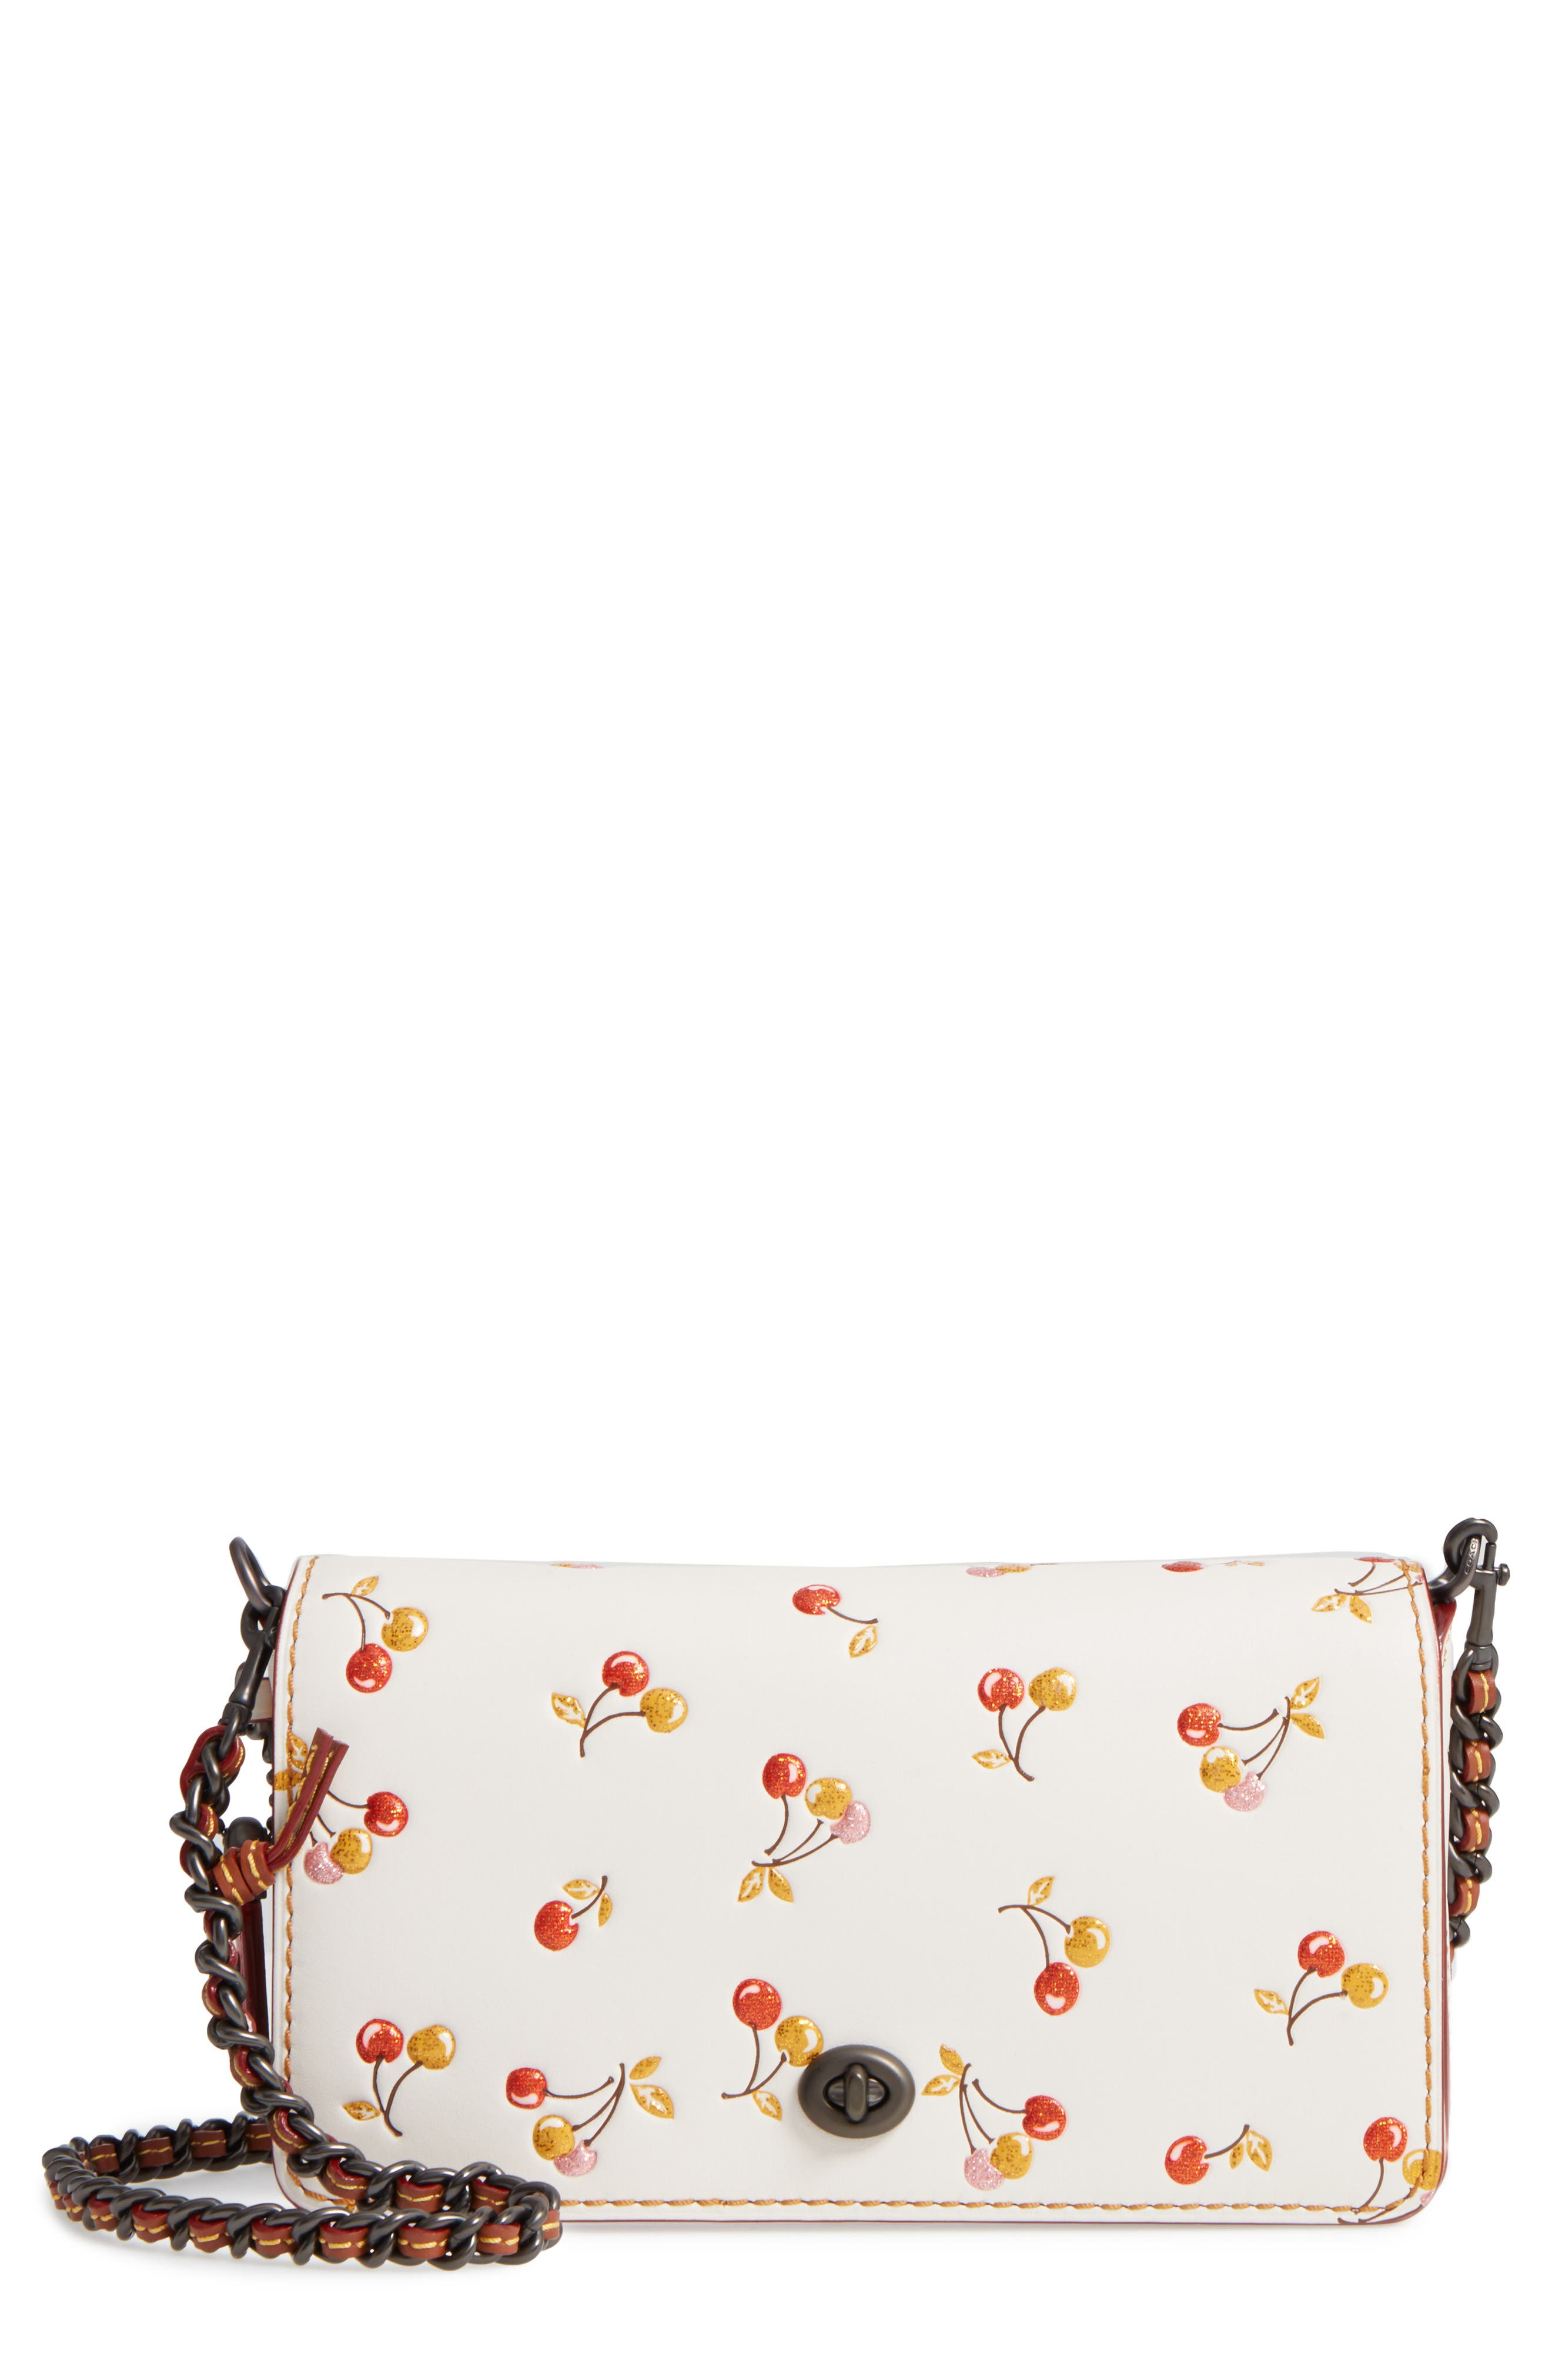 Cherries Dinky Leather Crossbody Bag,                         Main,                         color, 250